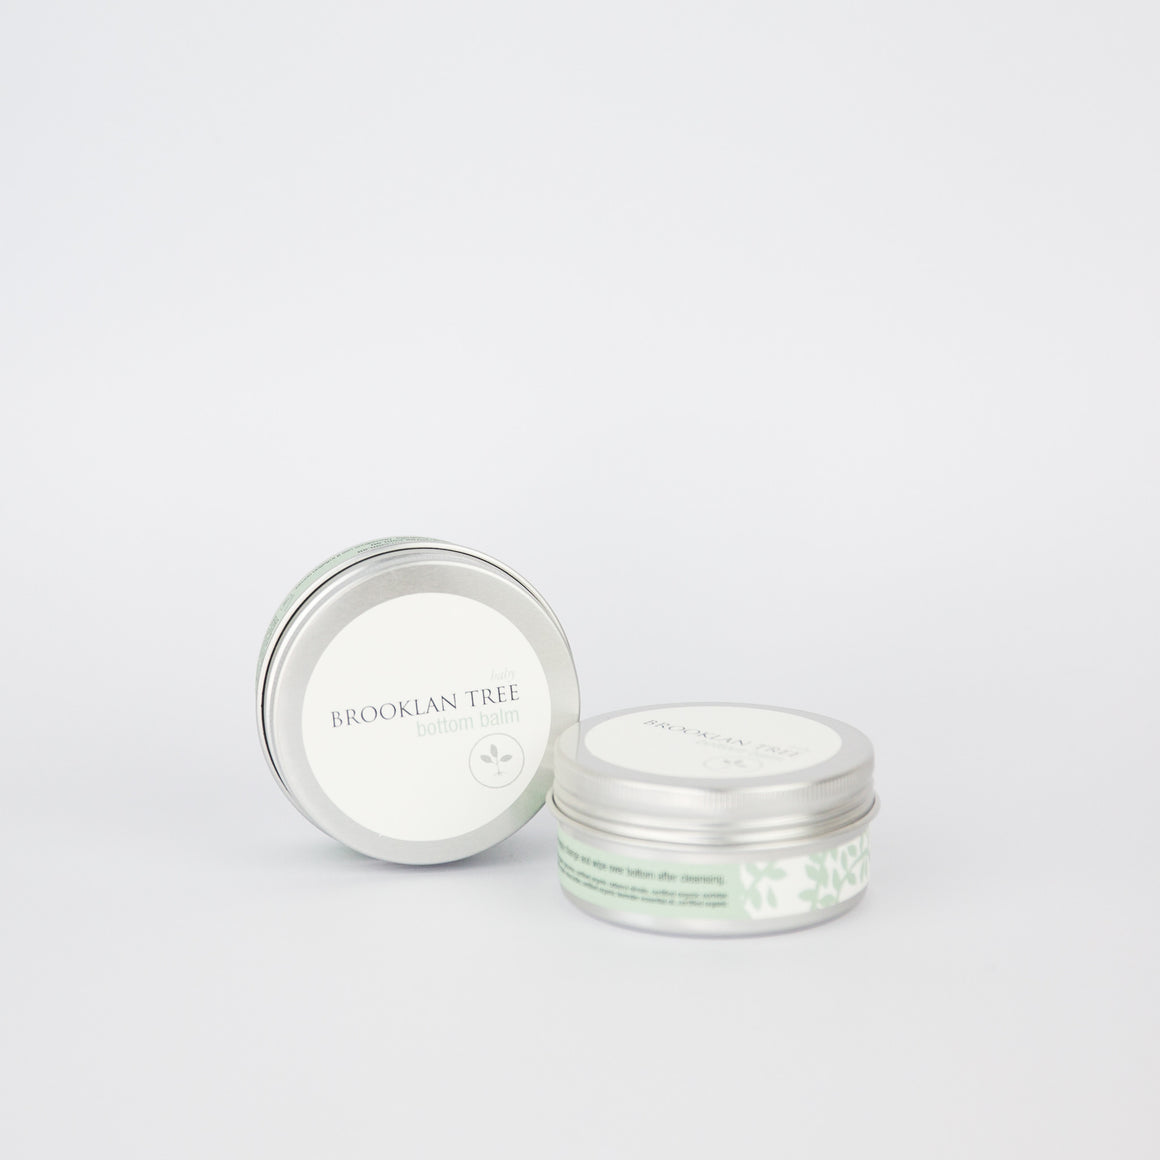 Baby Bottom Balm - Brooklan Tree